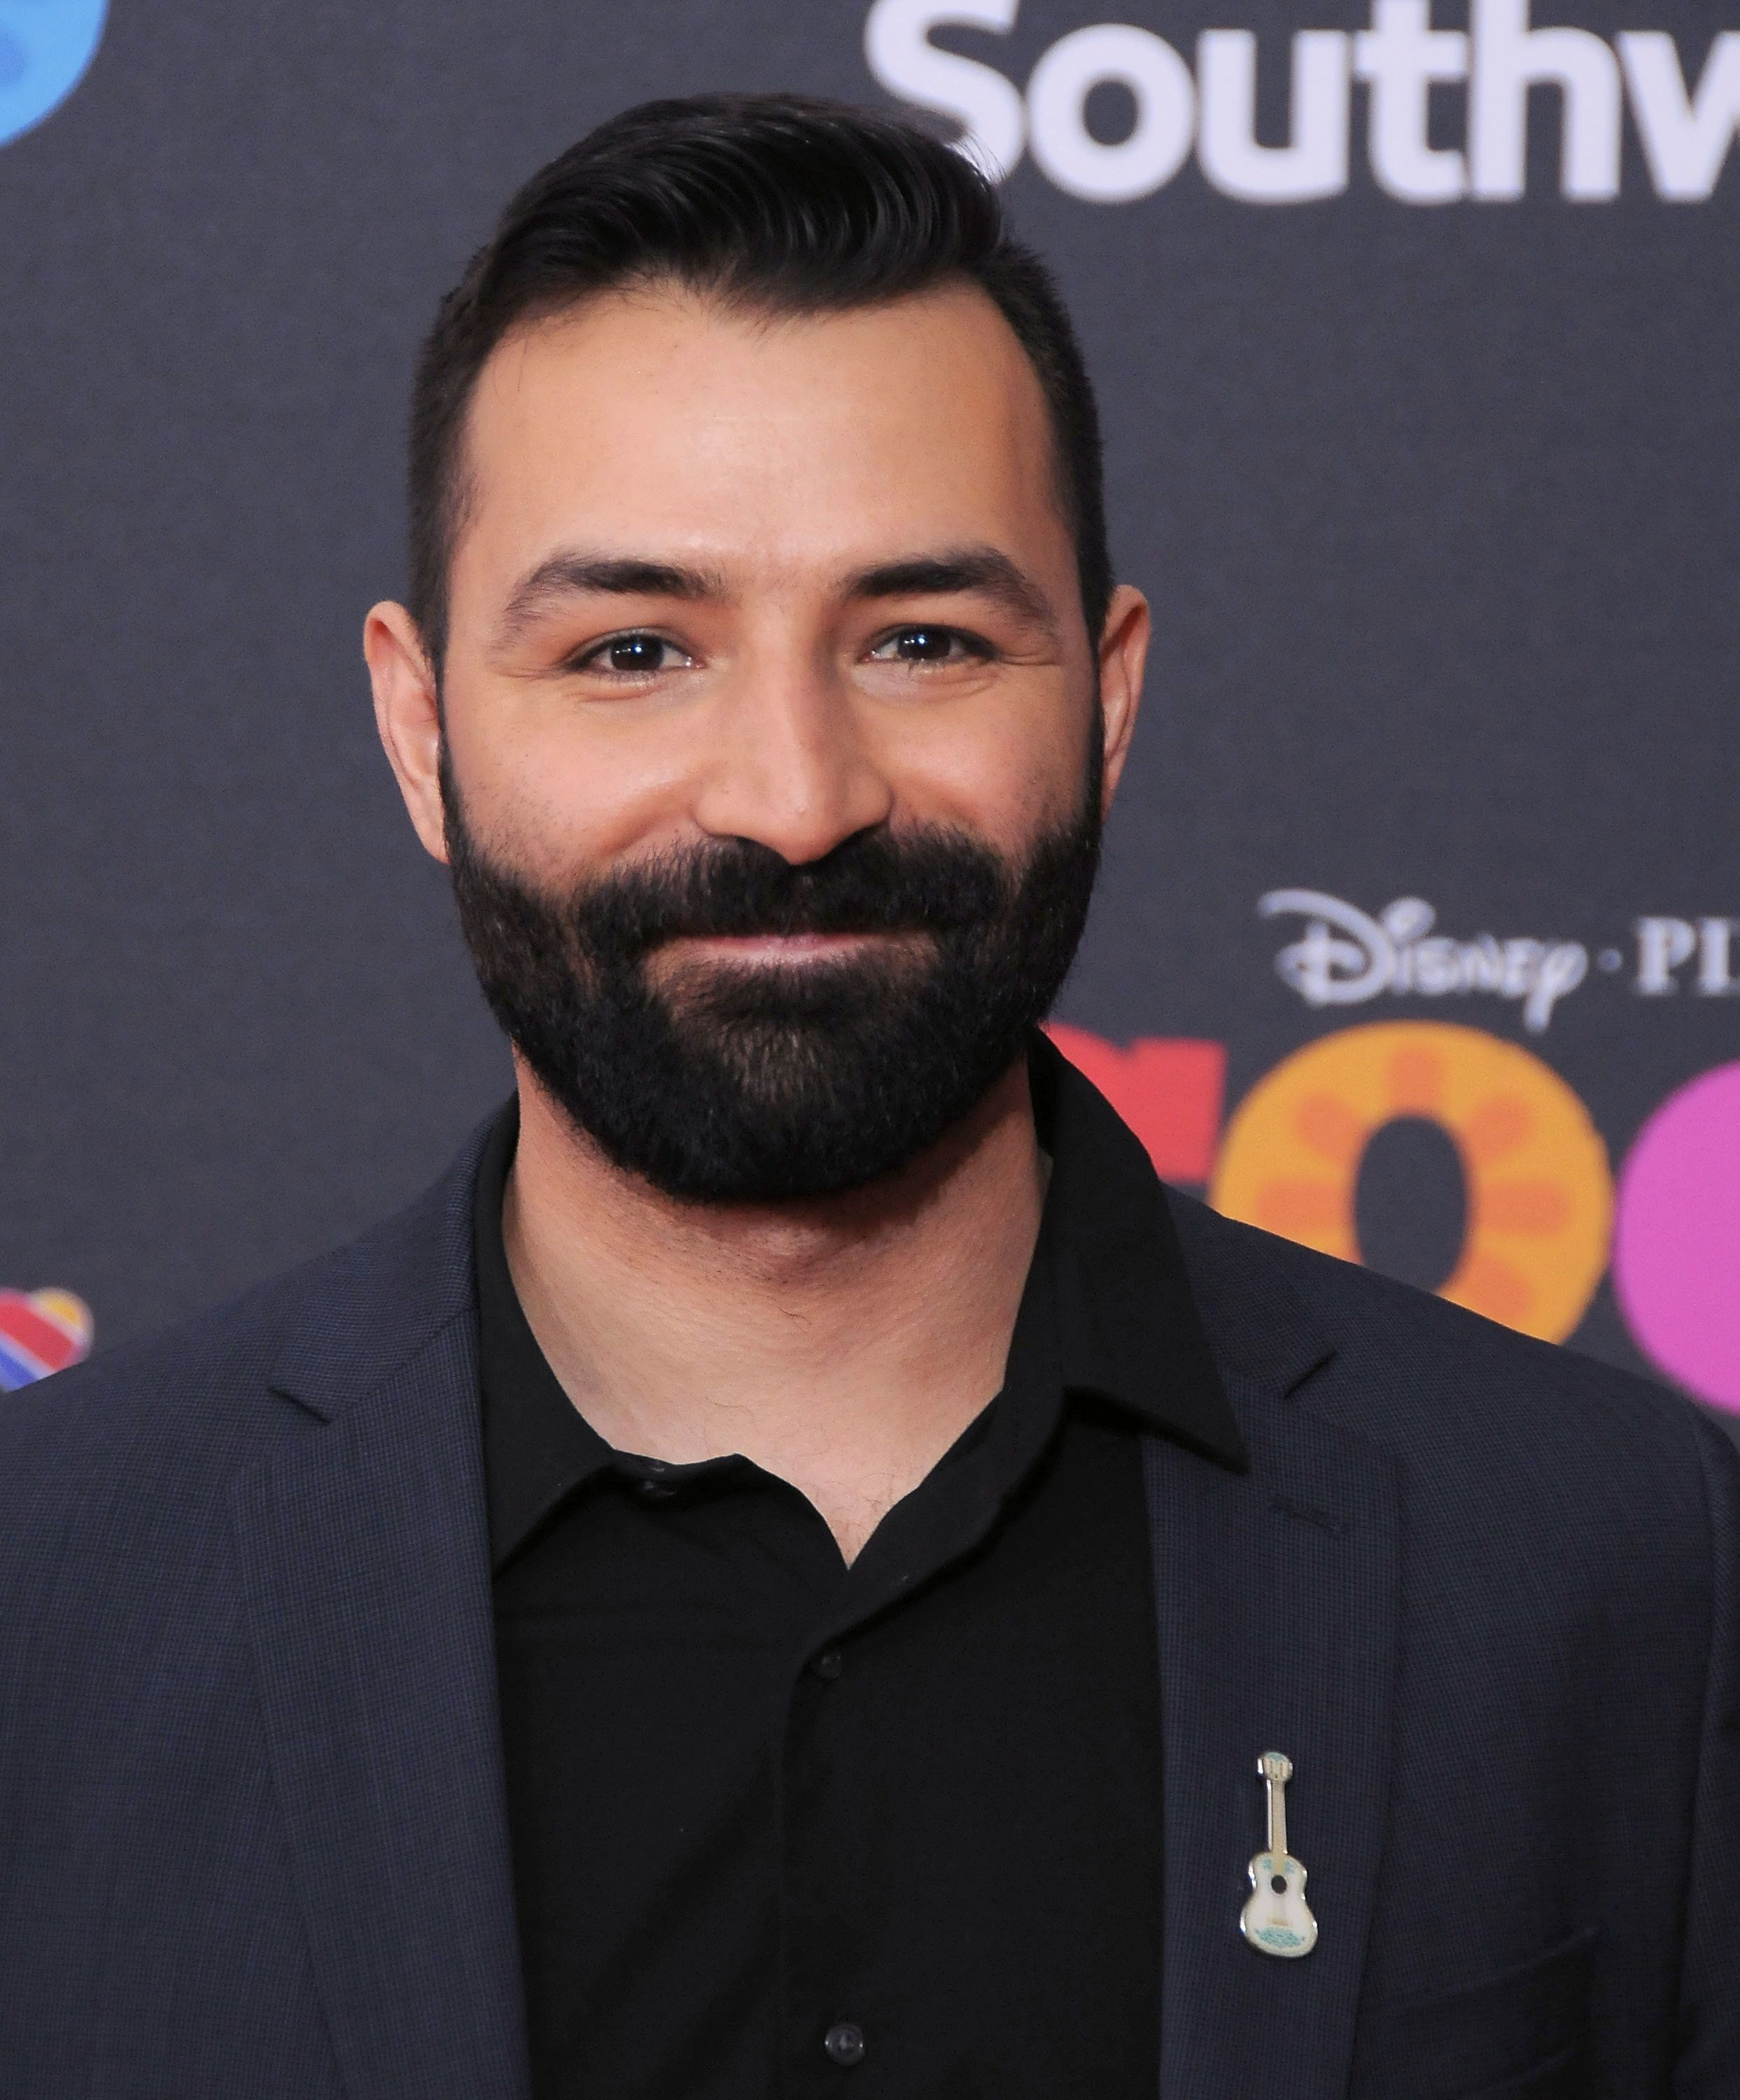 LOS ANGELES, CA - NOVEMBER 08:  Co-director Adrian Molina attends the U.S. Premiere of Disney Pixar's 'Coco' at El Capitan Theatre on November 8, 2017 in Los Angeles, California.  (Photo by Barry King/Getty Images)